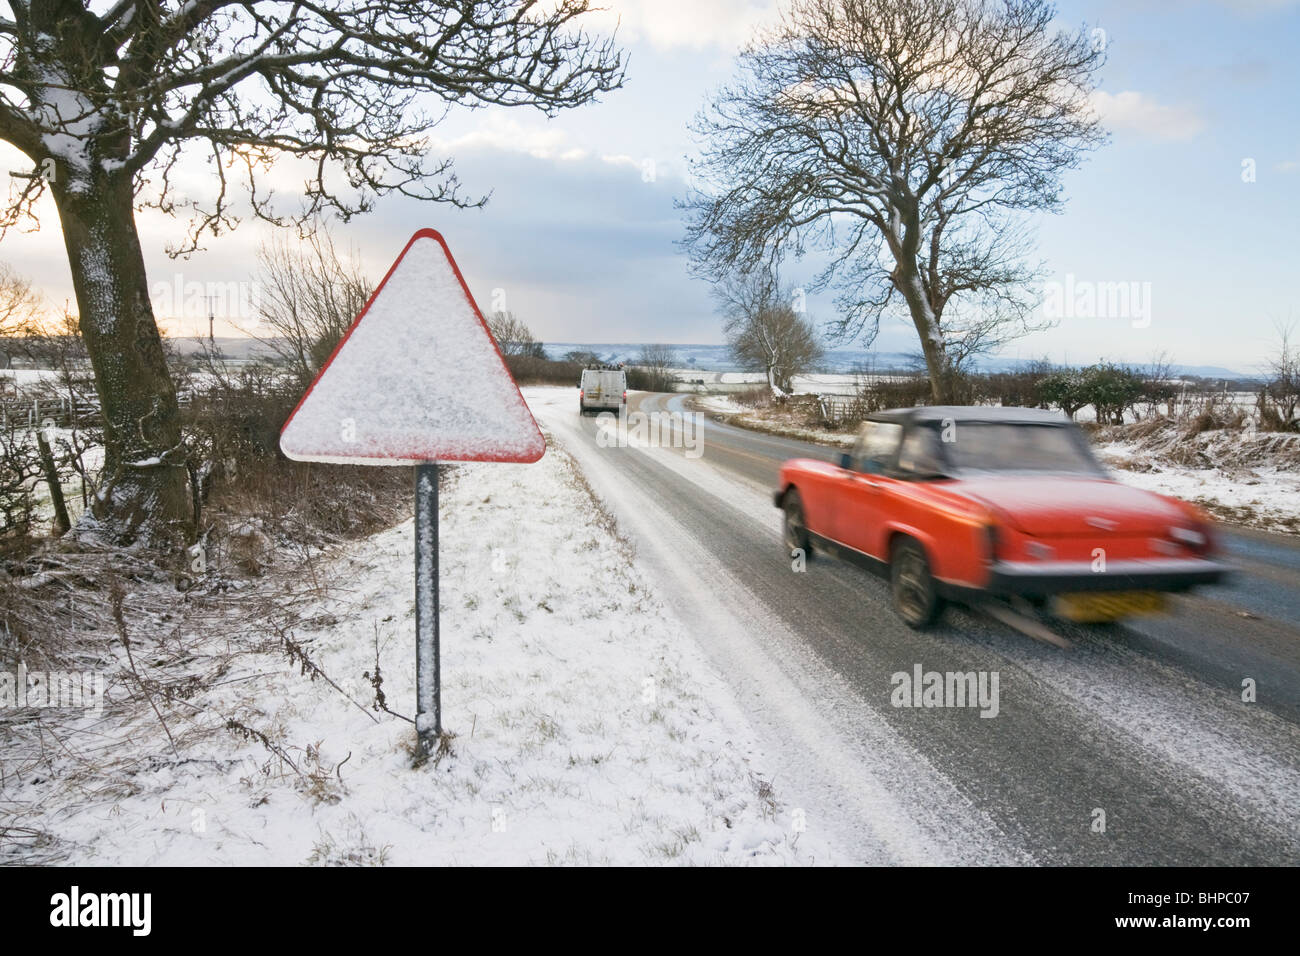 Road warning sign covered with snow alongside a slush covered road, North Yorkshire, UK - Stock Image